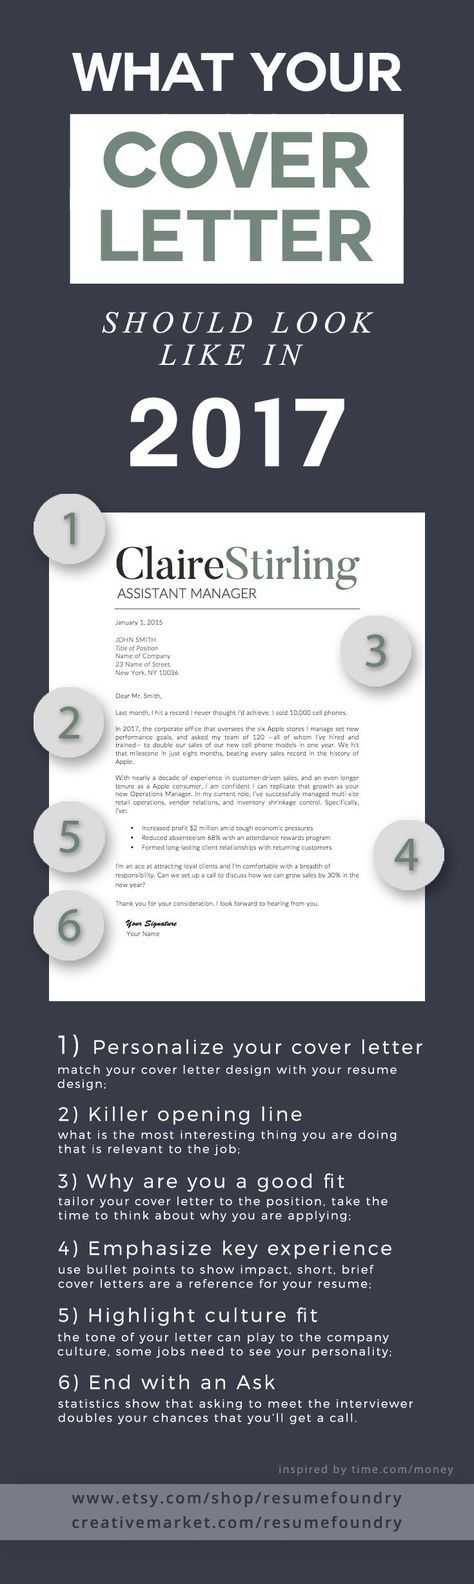 accountant cover letters%0A What your Cover Letter should look like in       Inspired from time com